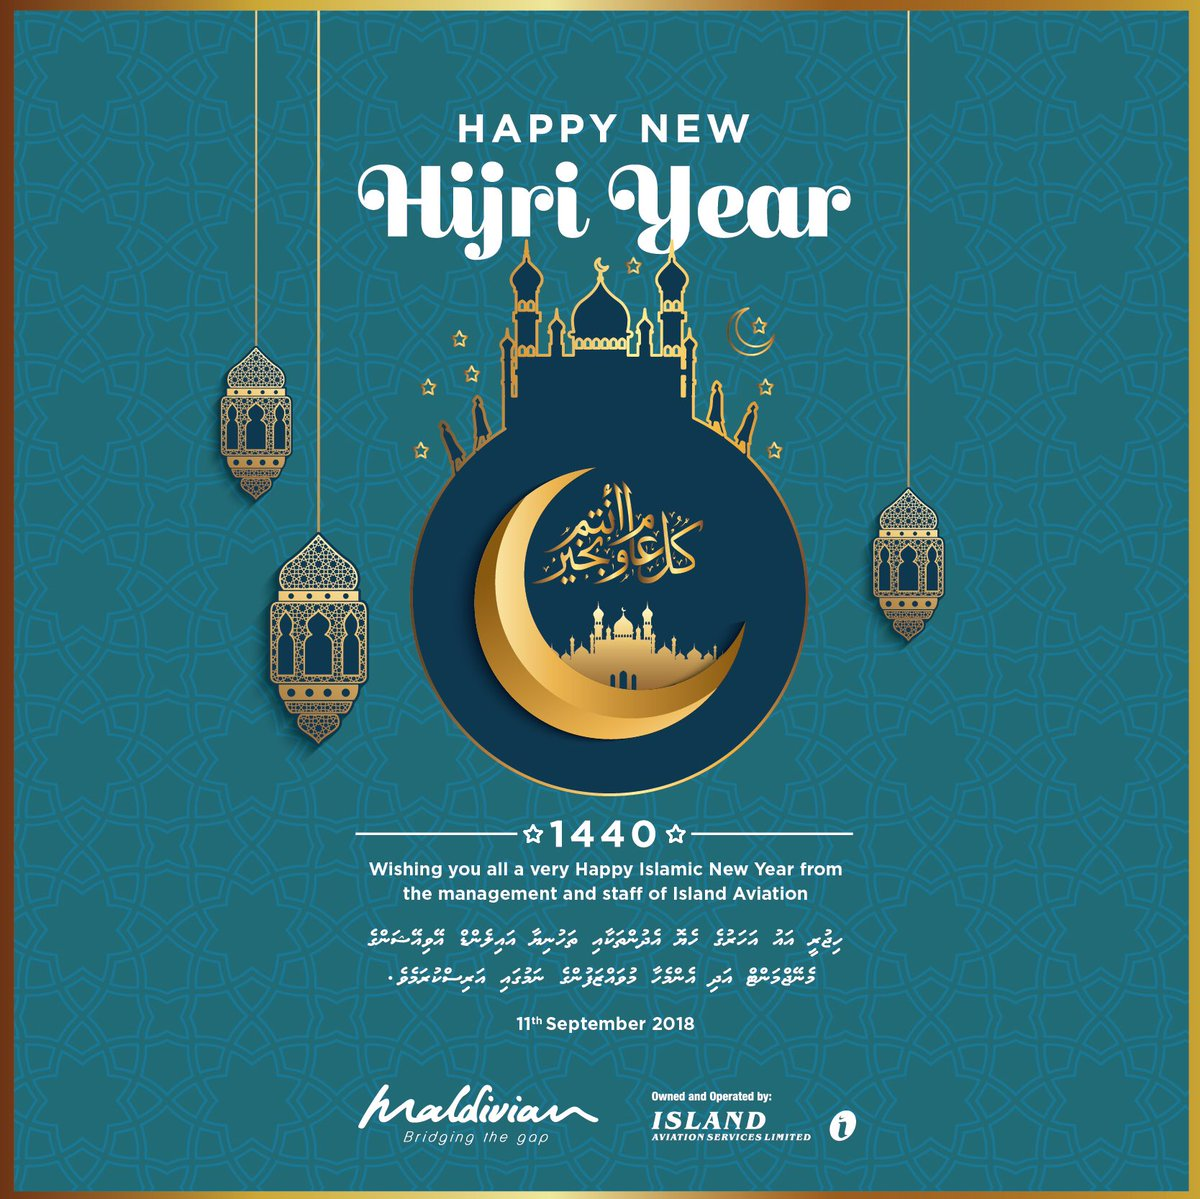 maldivian on twitter wishing you a very happy islamic new year from the management and staff of island aviation